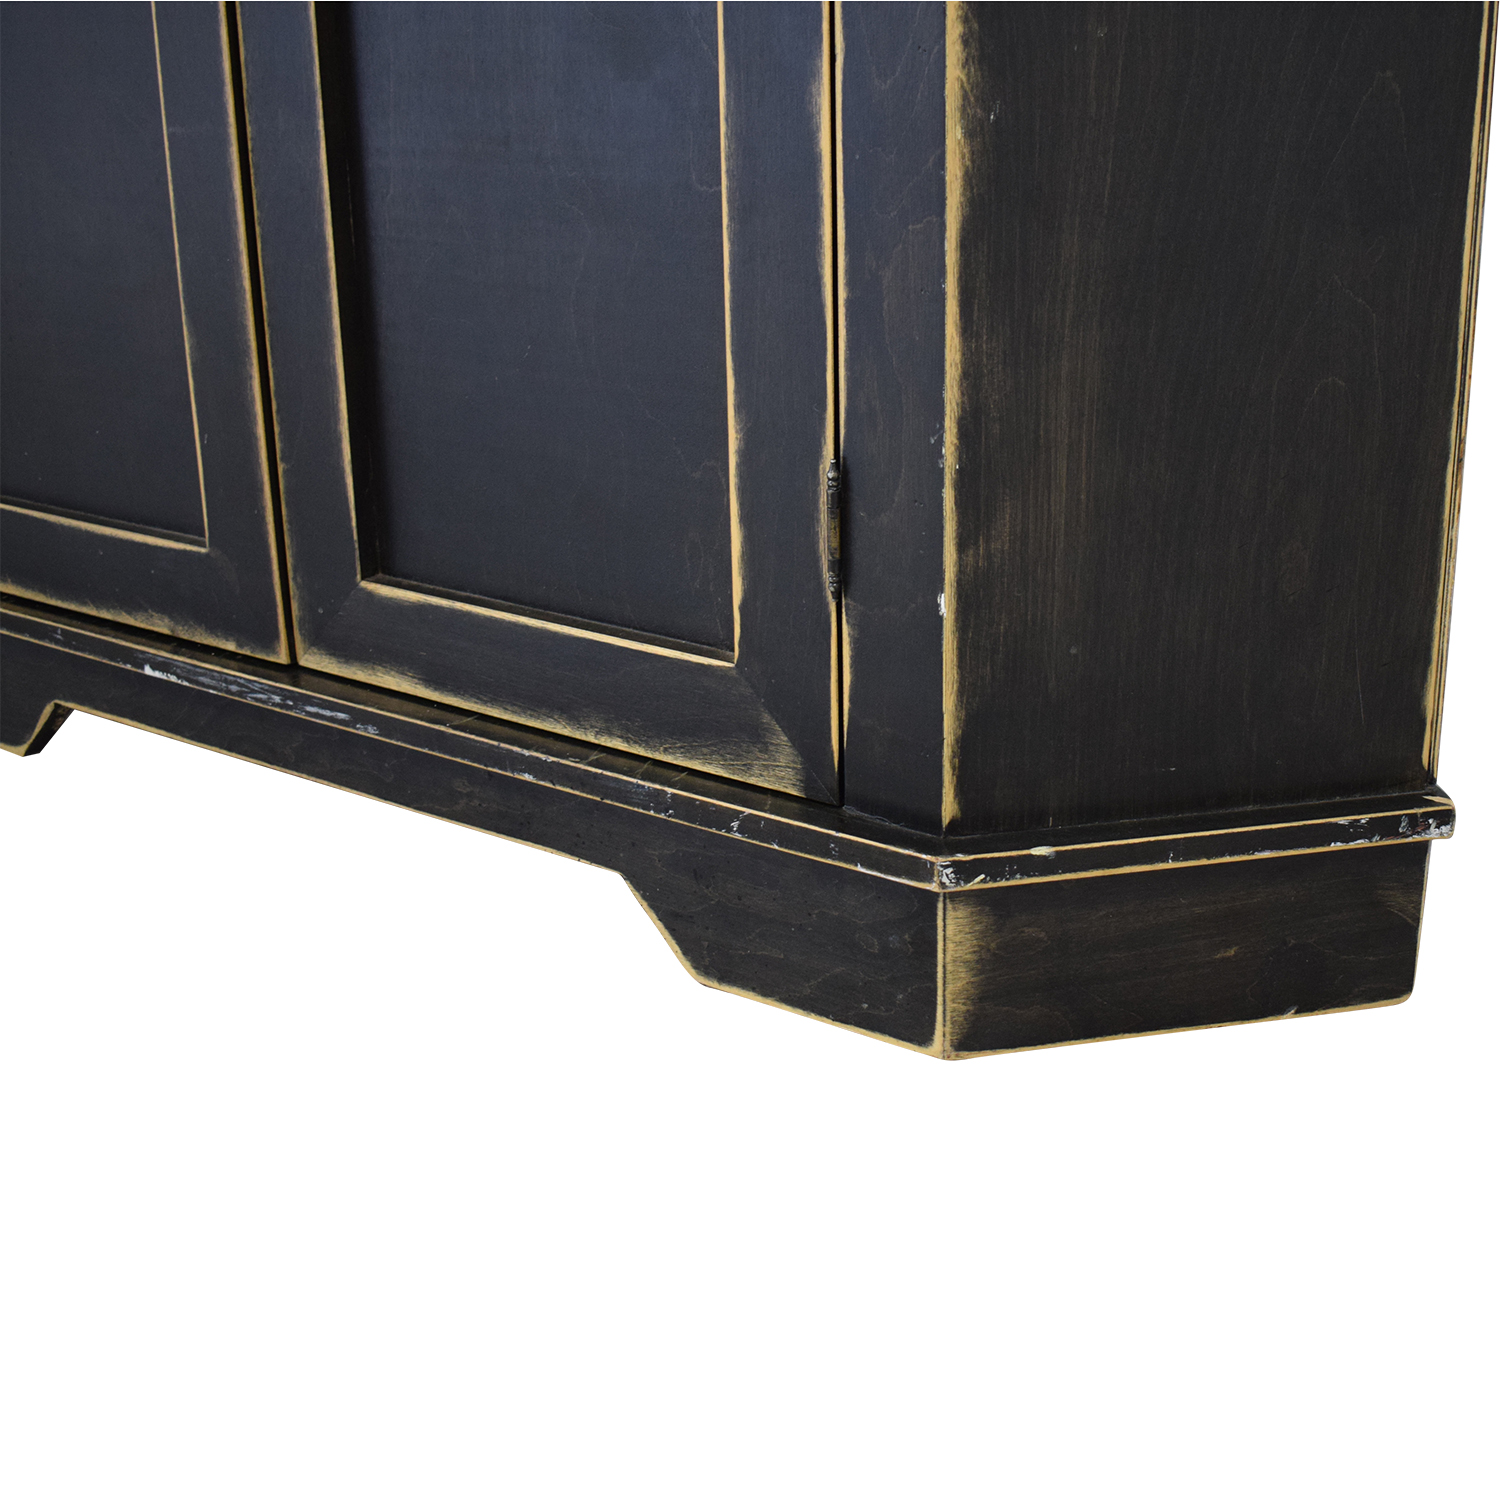 Gothic Cabinet Craft Gothic Cabinet Craft Corner Office Armoire second hand